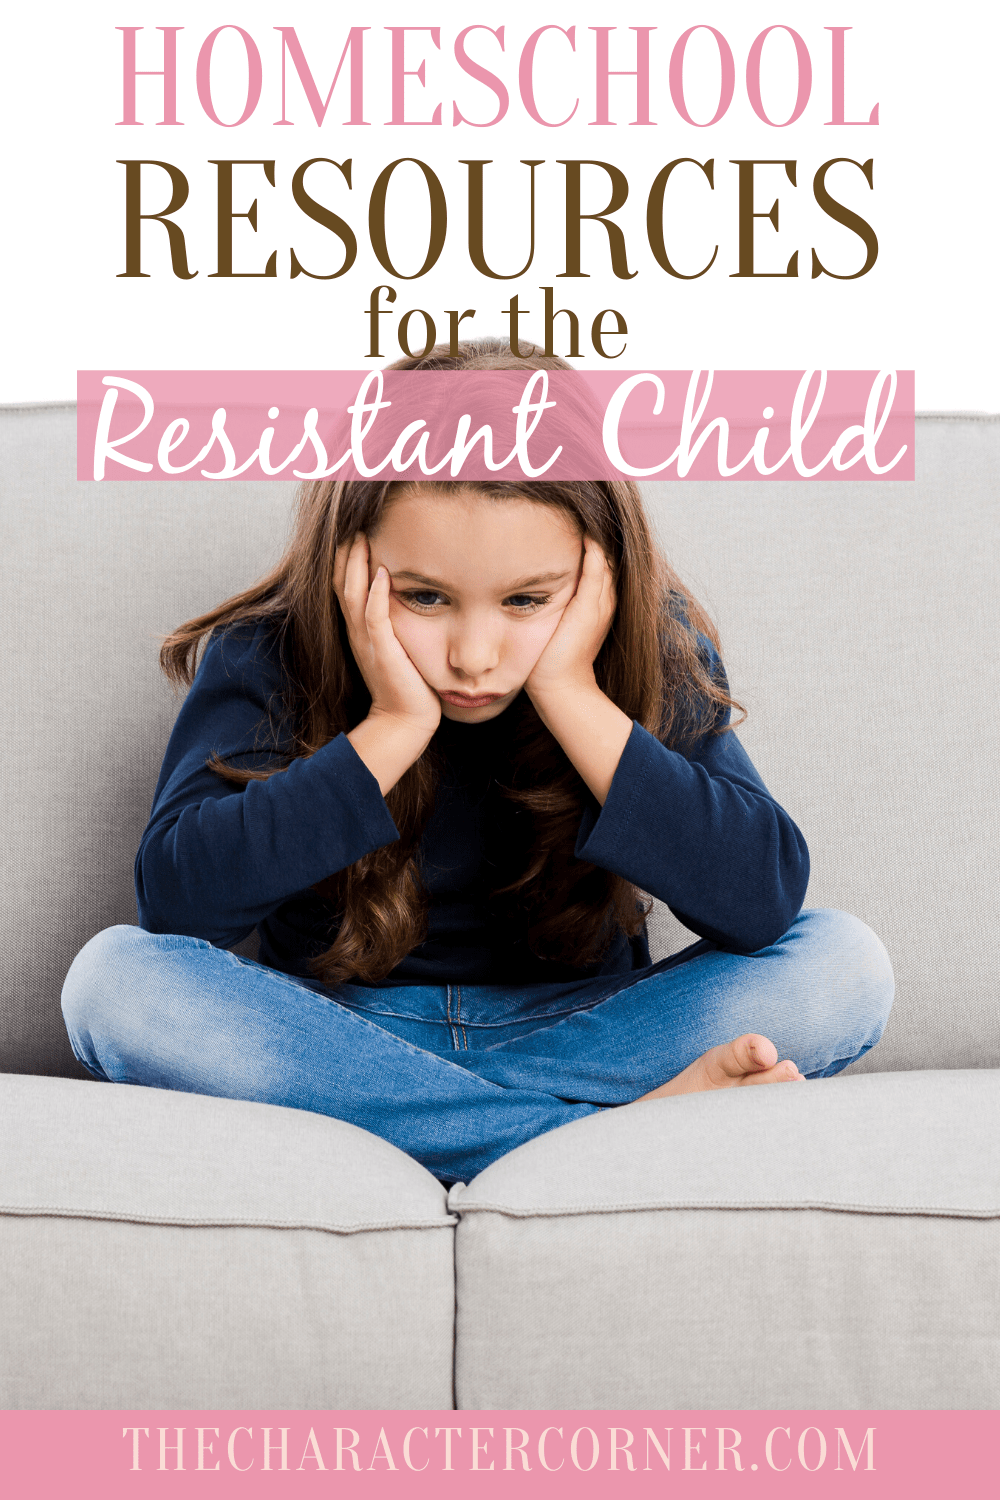 Homeschool Resources for the Resistant Child